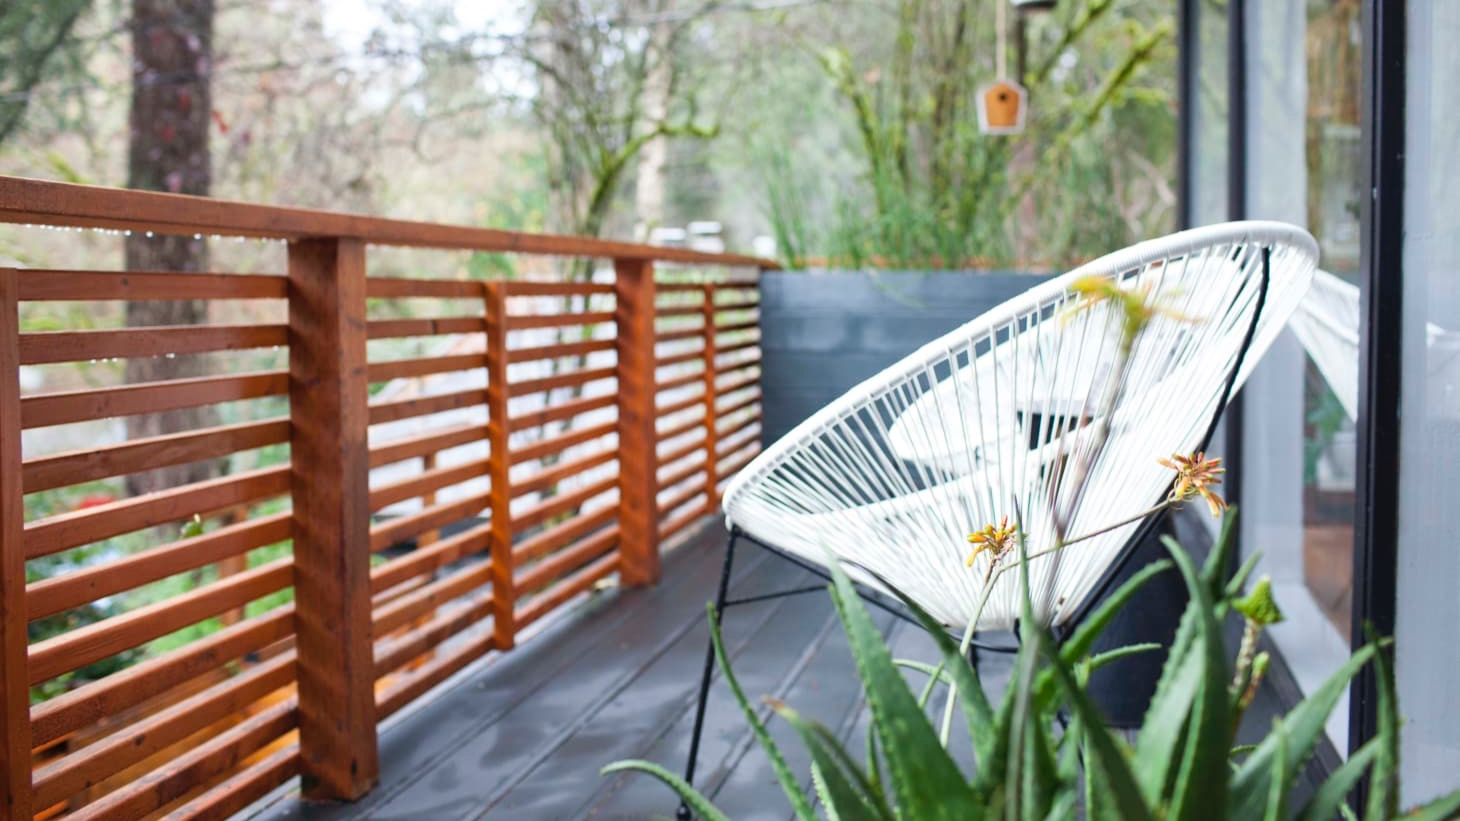 Apartment Therapy - 7 Design Tricks That Will Make Your Small Outdoor Space Feel So Much Bigger